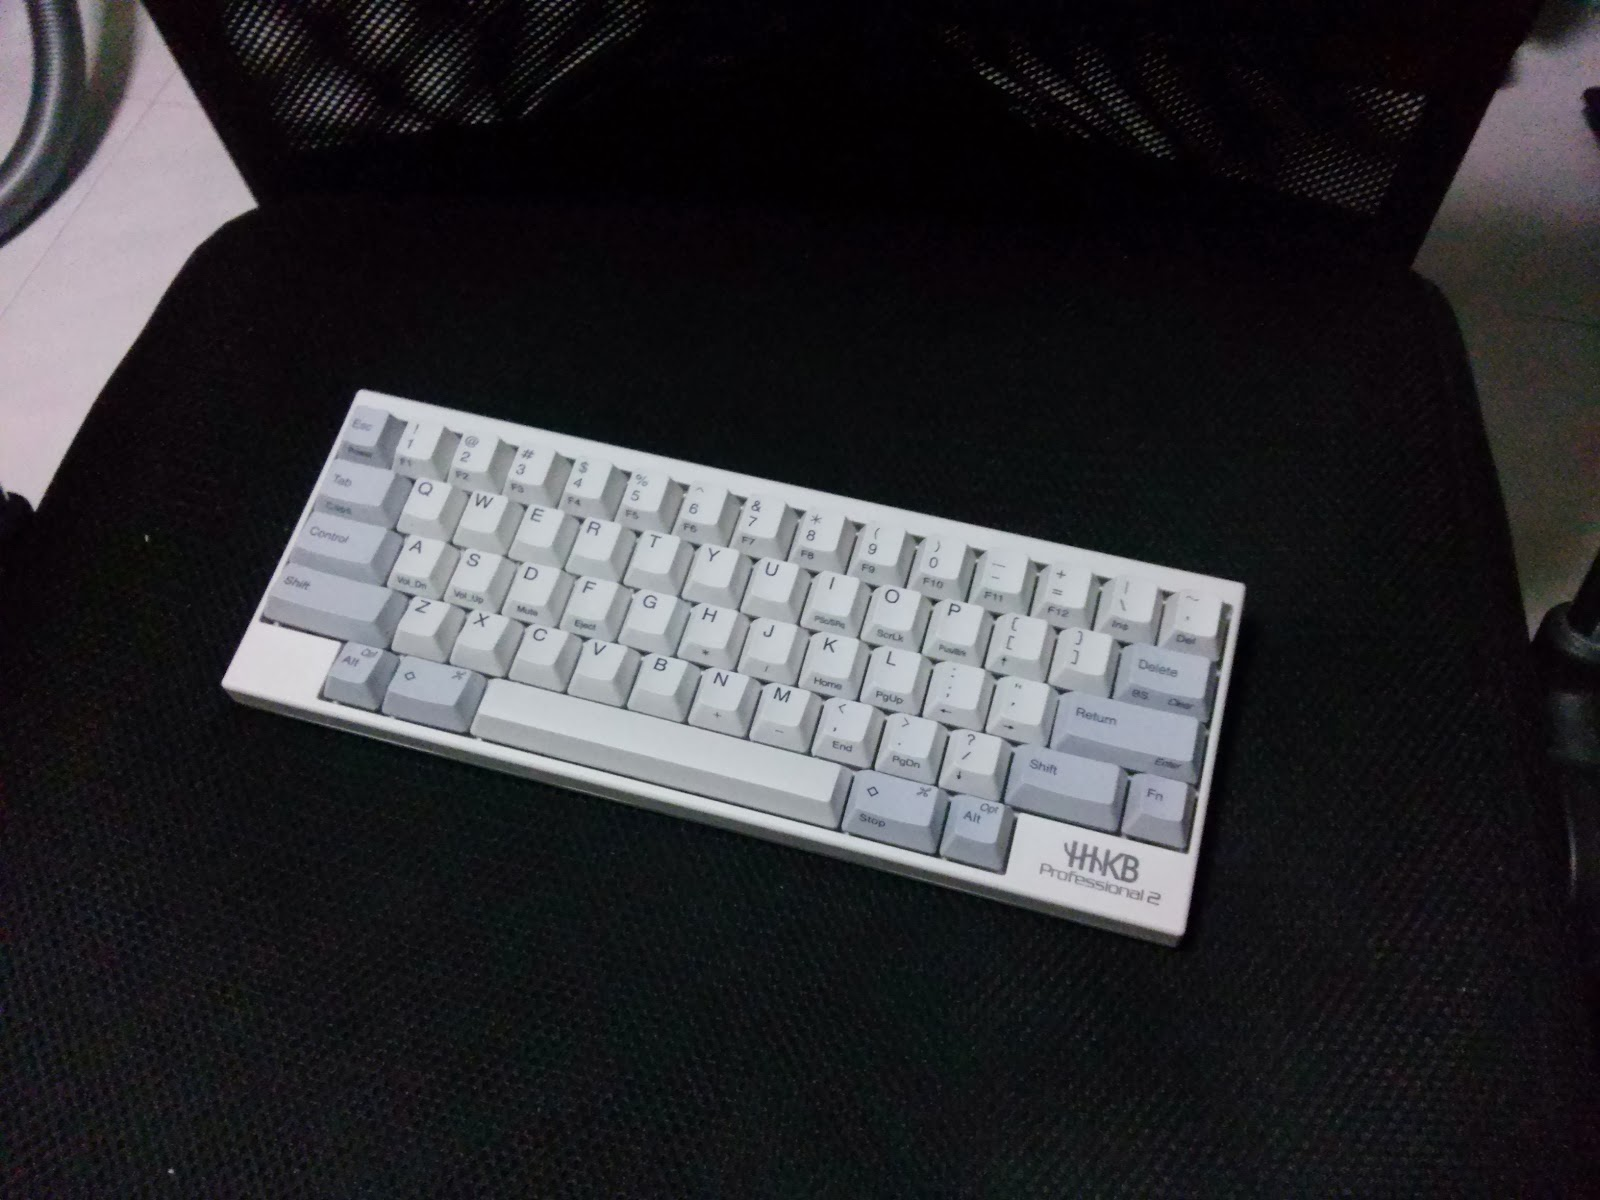 74733cffd49 Very light keyboard. Key feel is typical Topre. Better than the Realforce  86U. It's definitely more